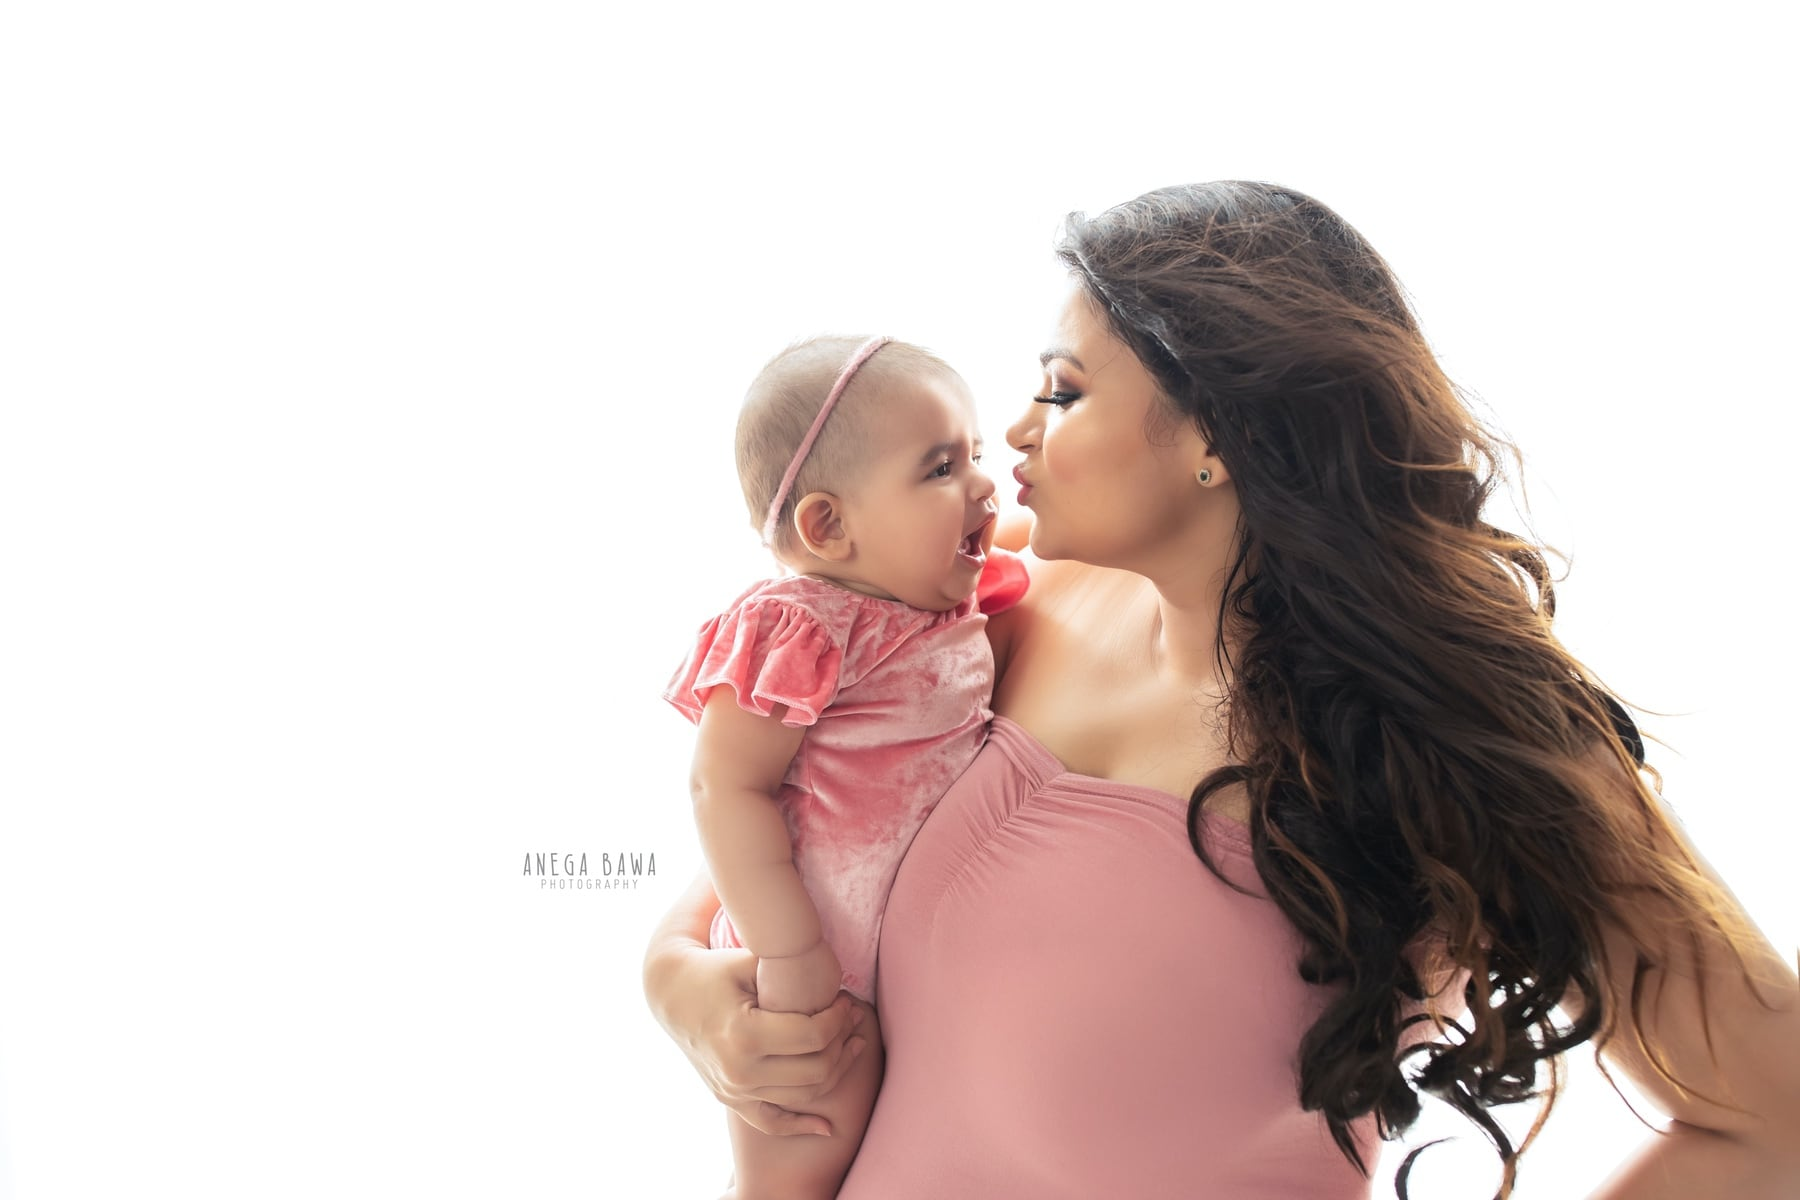 242111-white-background-pink-mother-and-baby-photography-delhi-5-6-7-months-baby-photoshoot-gurgaon-anega-bawa